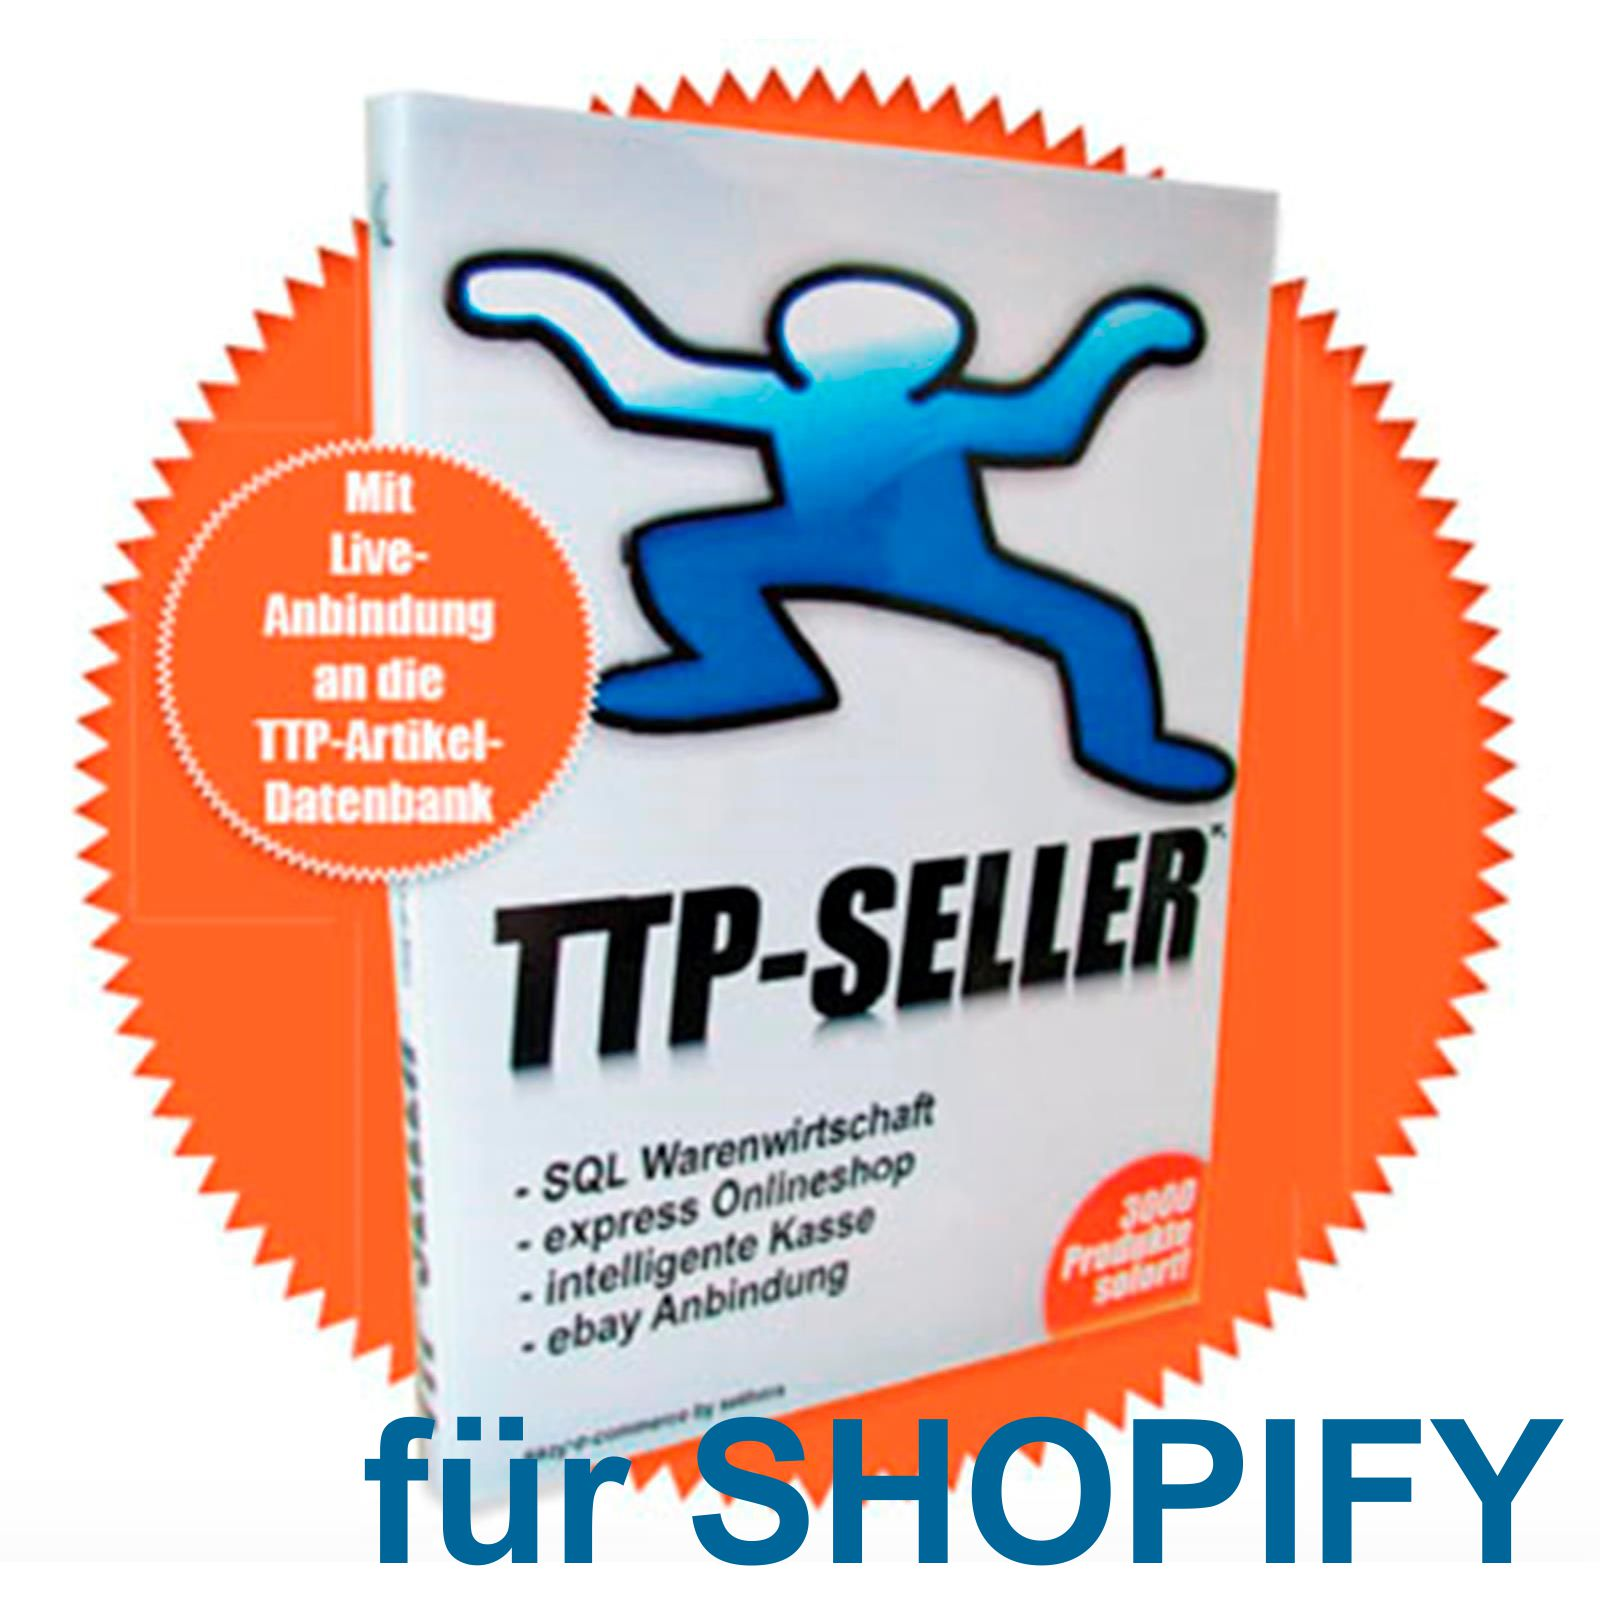 TTP SELLER Connector für Shopify Alle TTP Artikel in Deinem Shopify Onlineshop